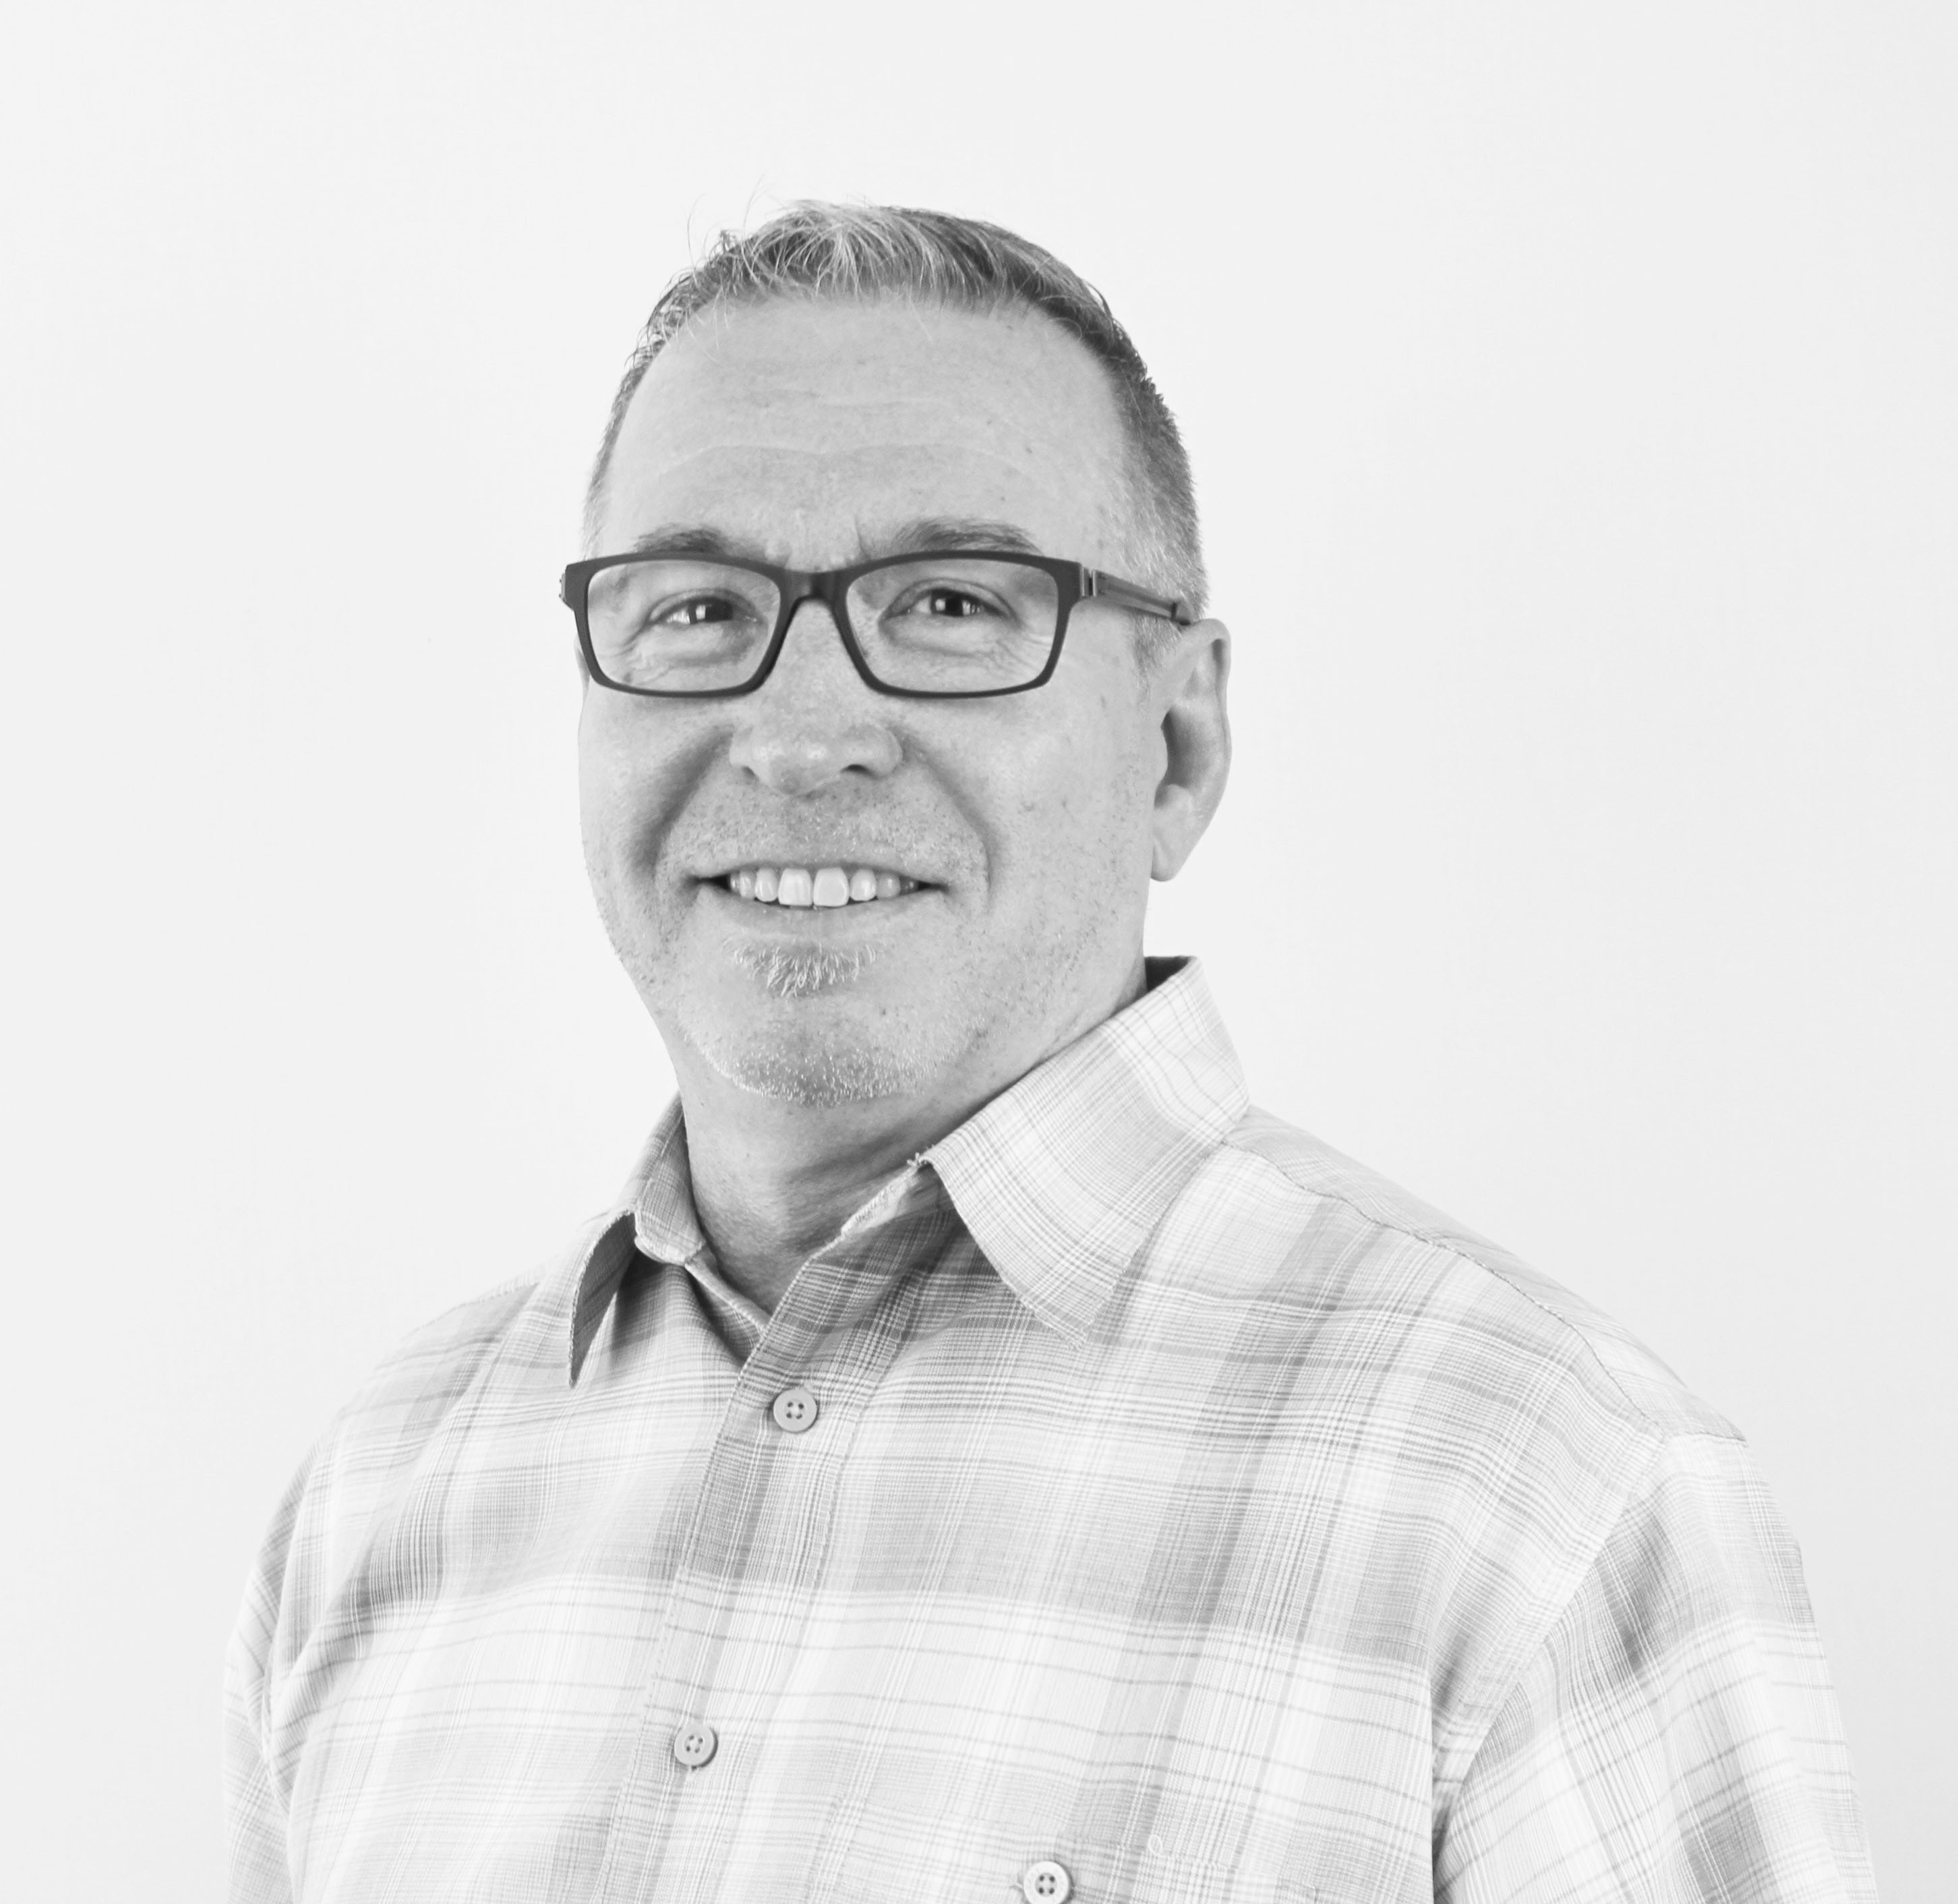 Robert - Consultant Manager